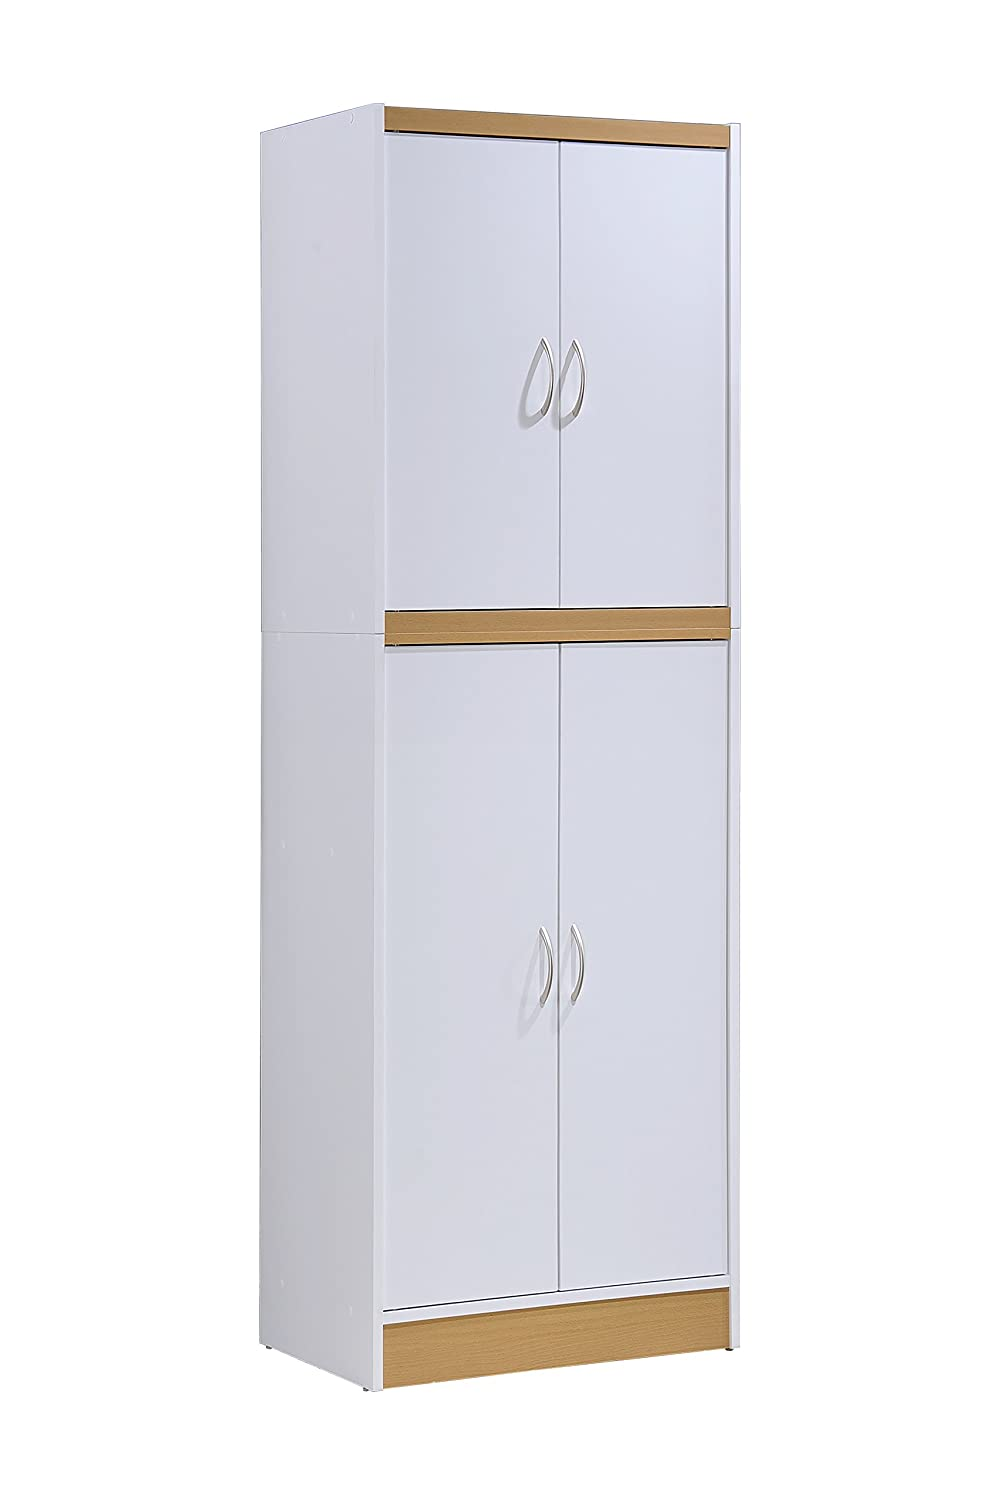 Hodedah 4 Door Kitchen Pantry with Four Shelves, White